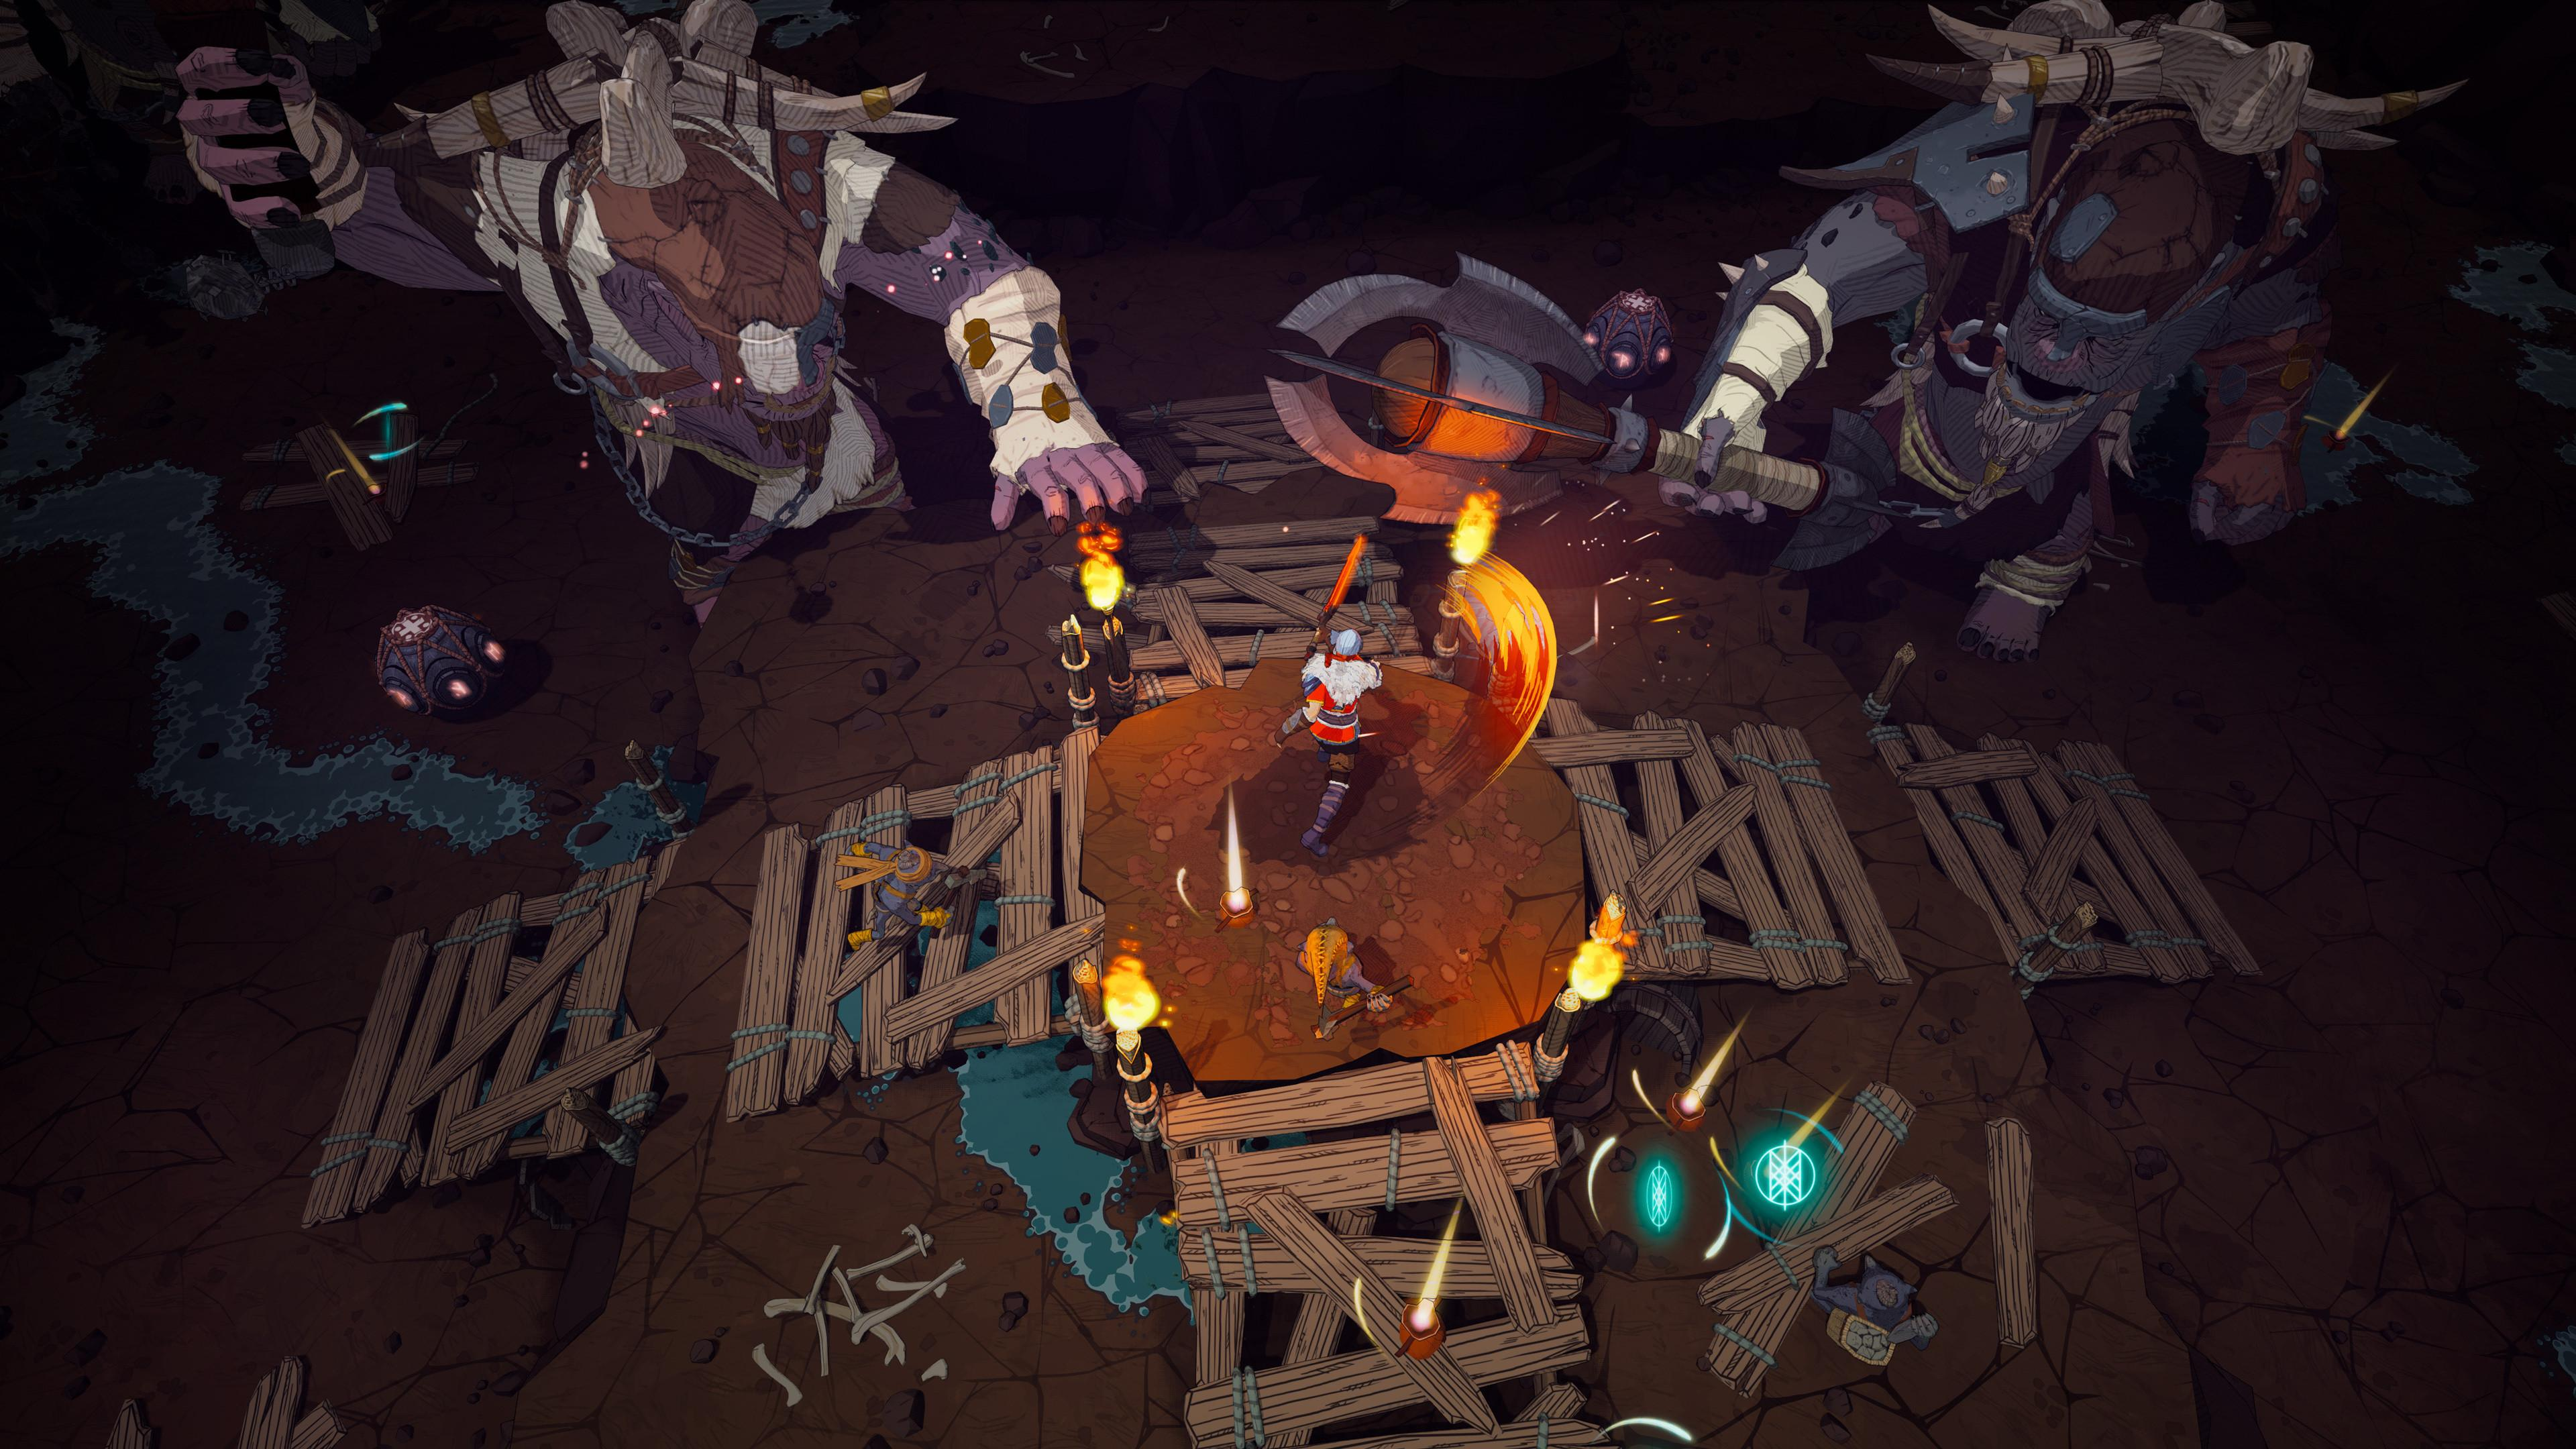 Tribes Of Midgard combines ARPG gameplay with elements of exploration and survival games